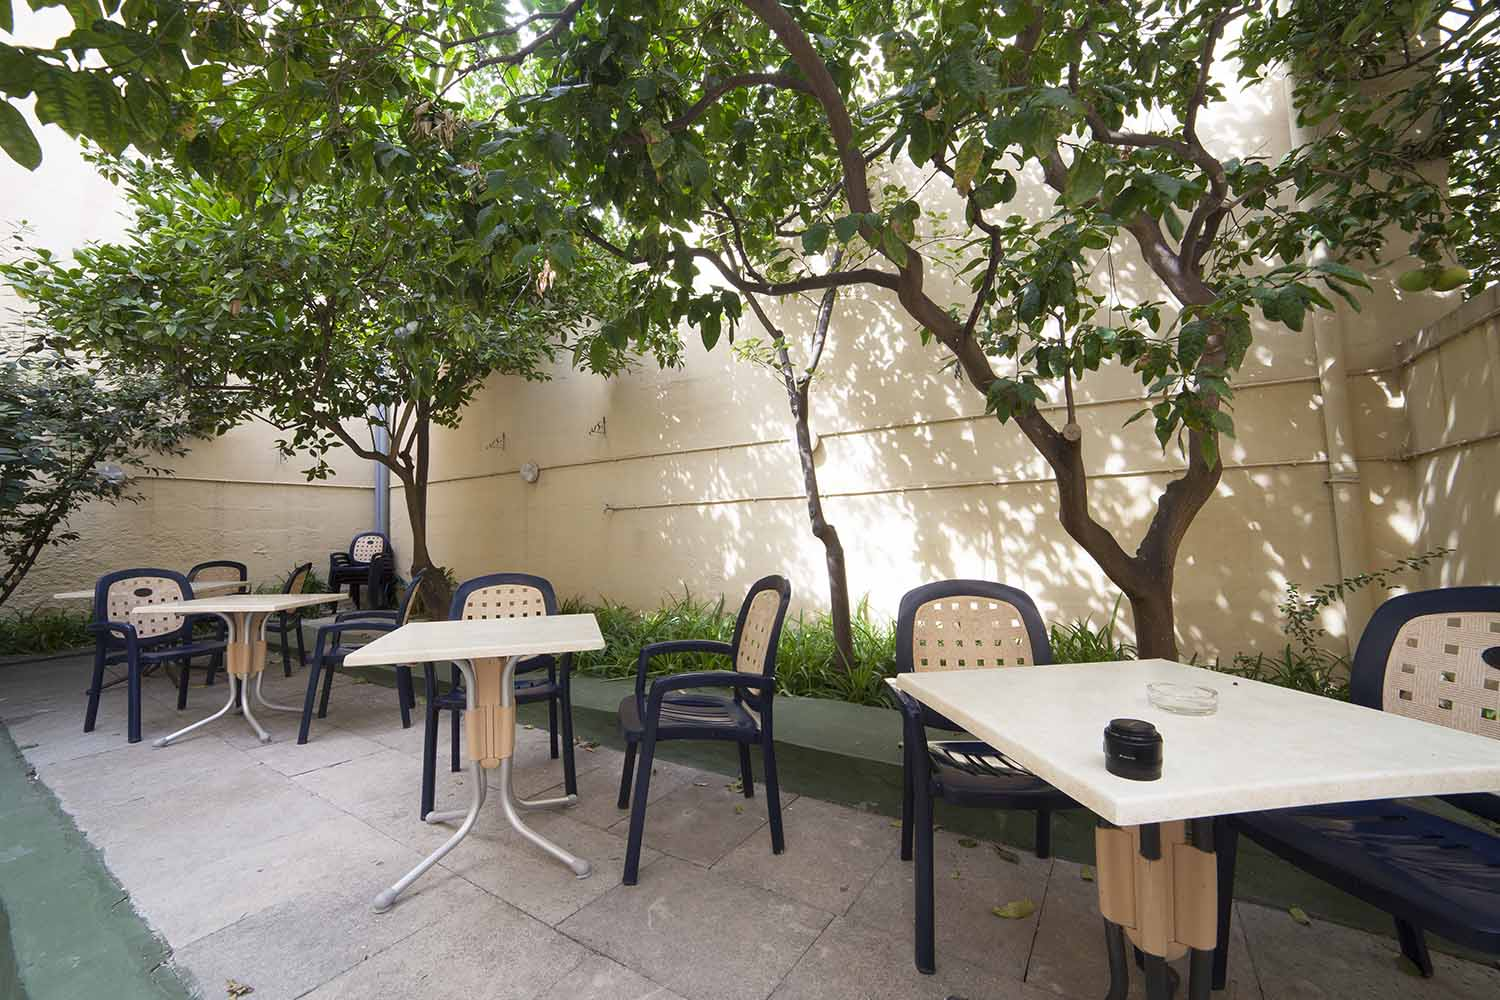 Malta_School_Patio_01